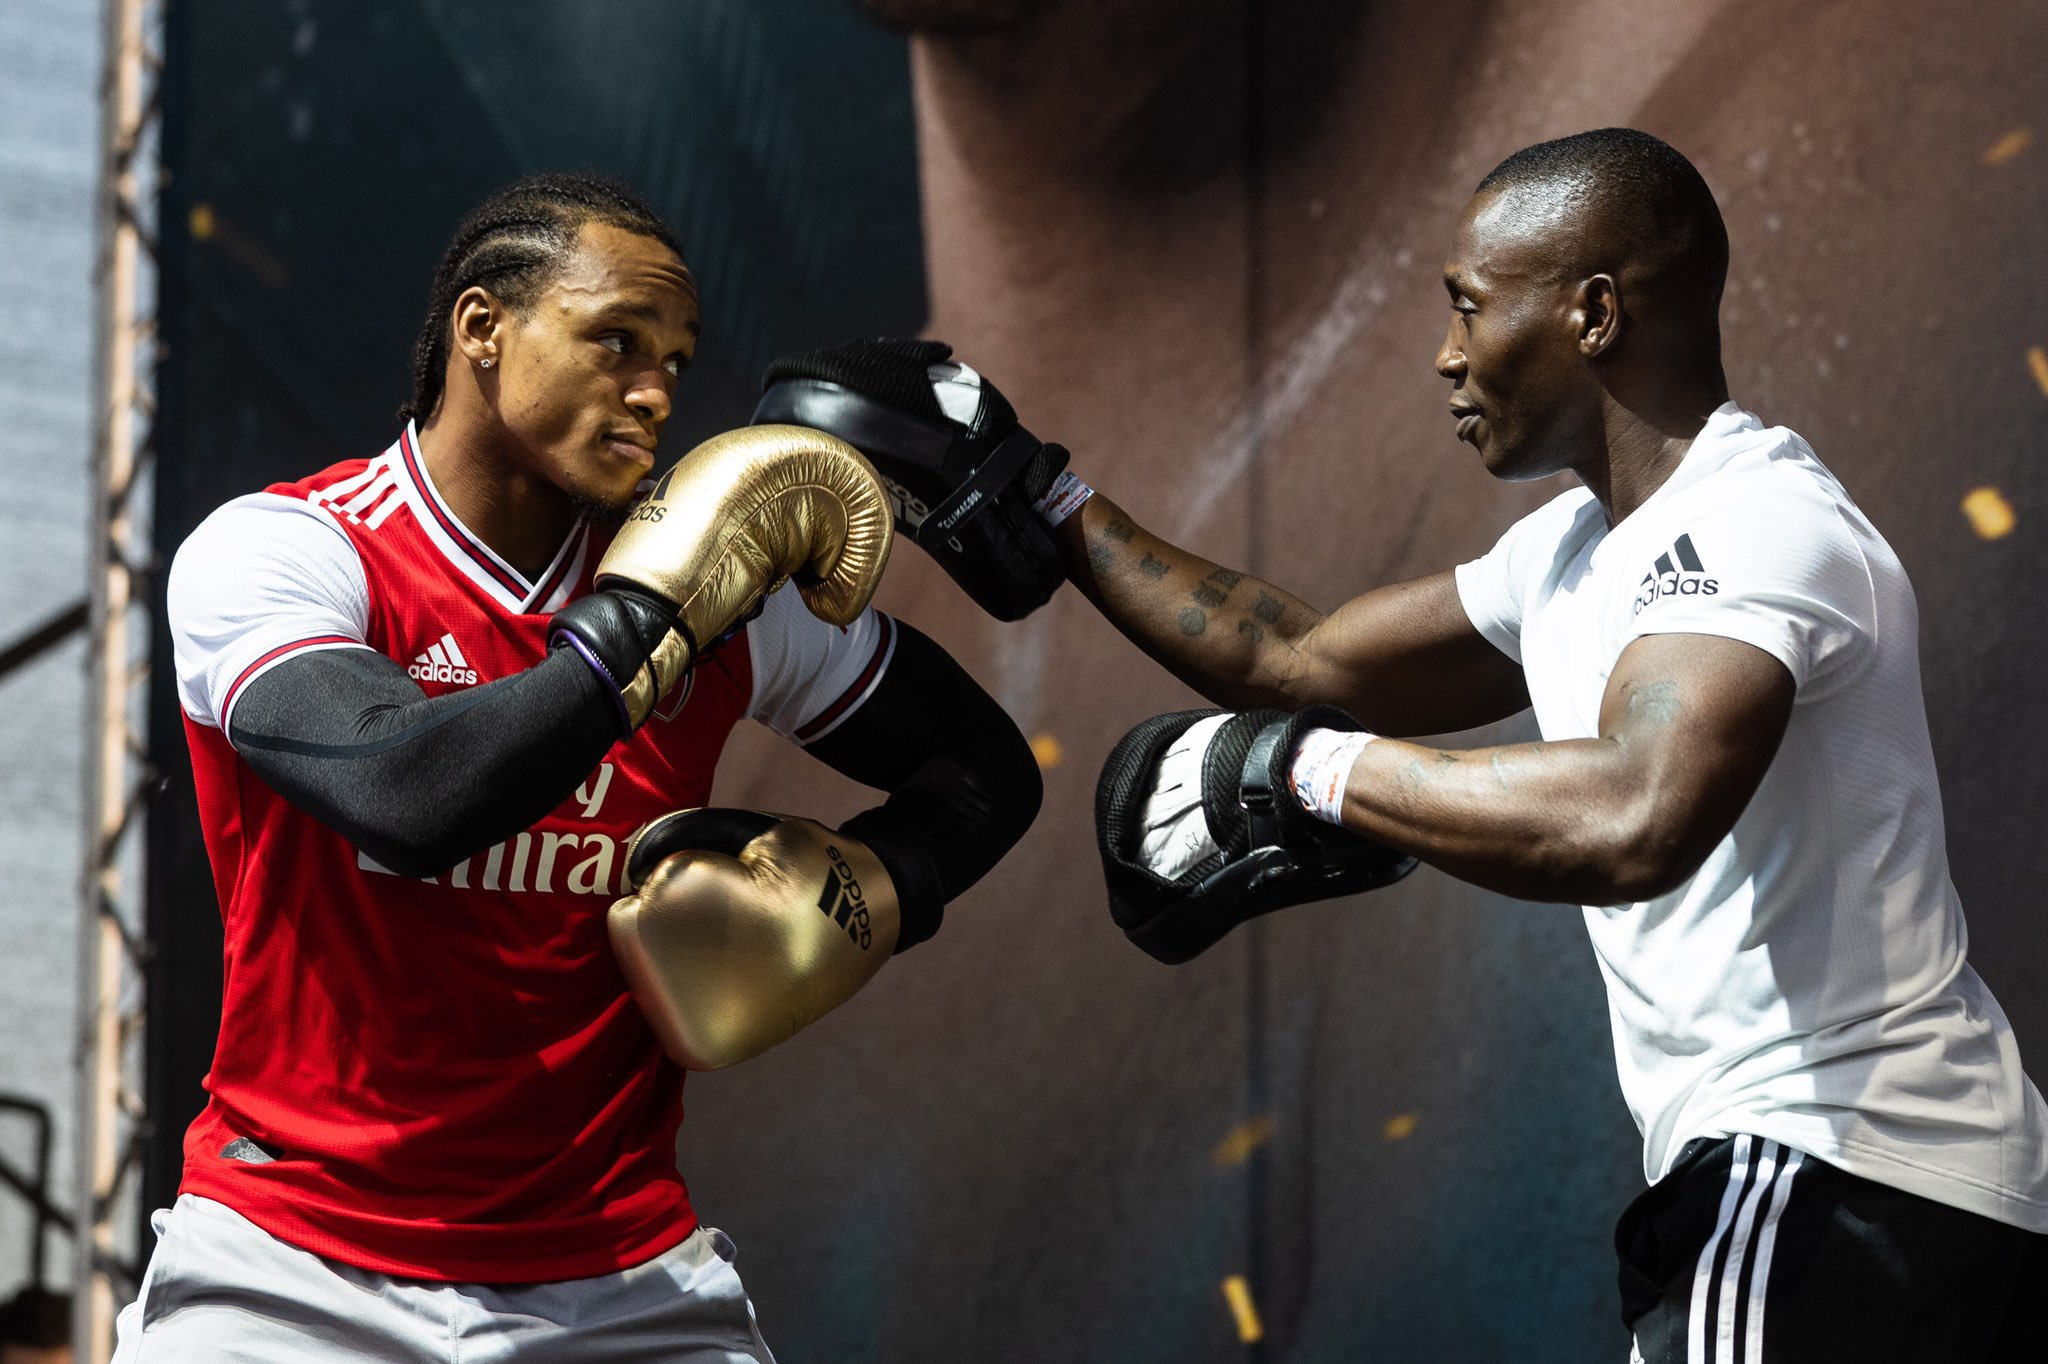 Yarde is 18-0 but has never fought the calibre of opponent such as Kovalev